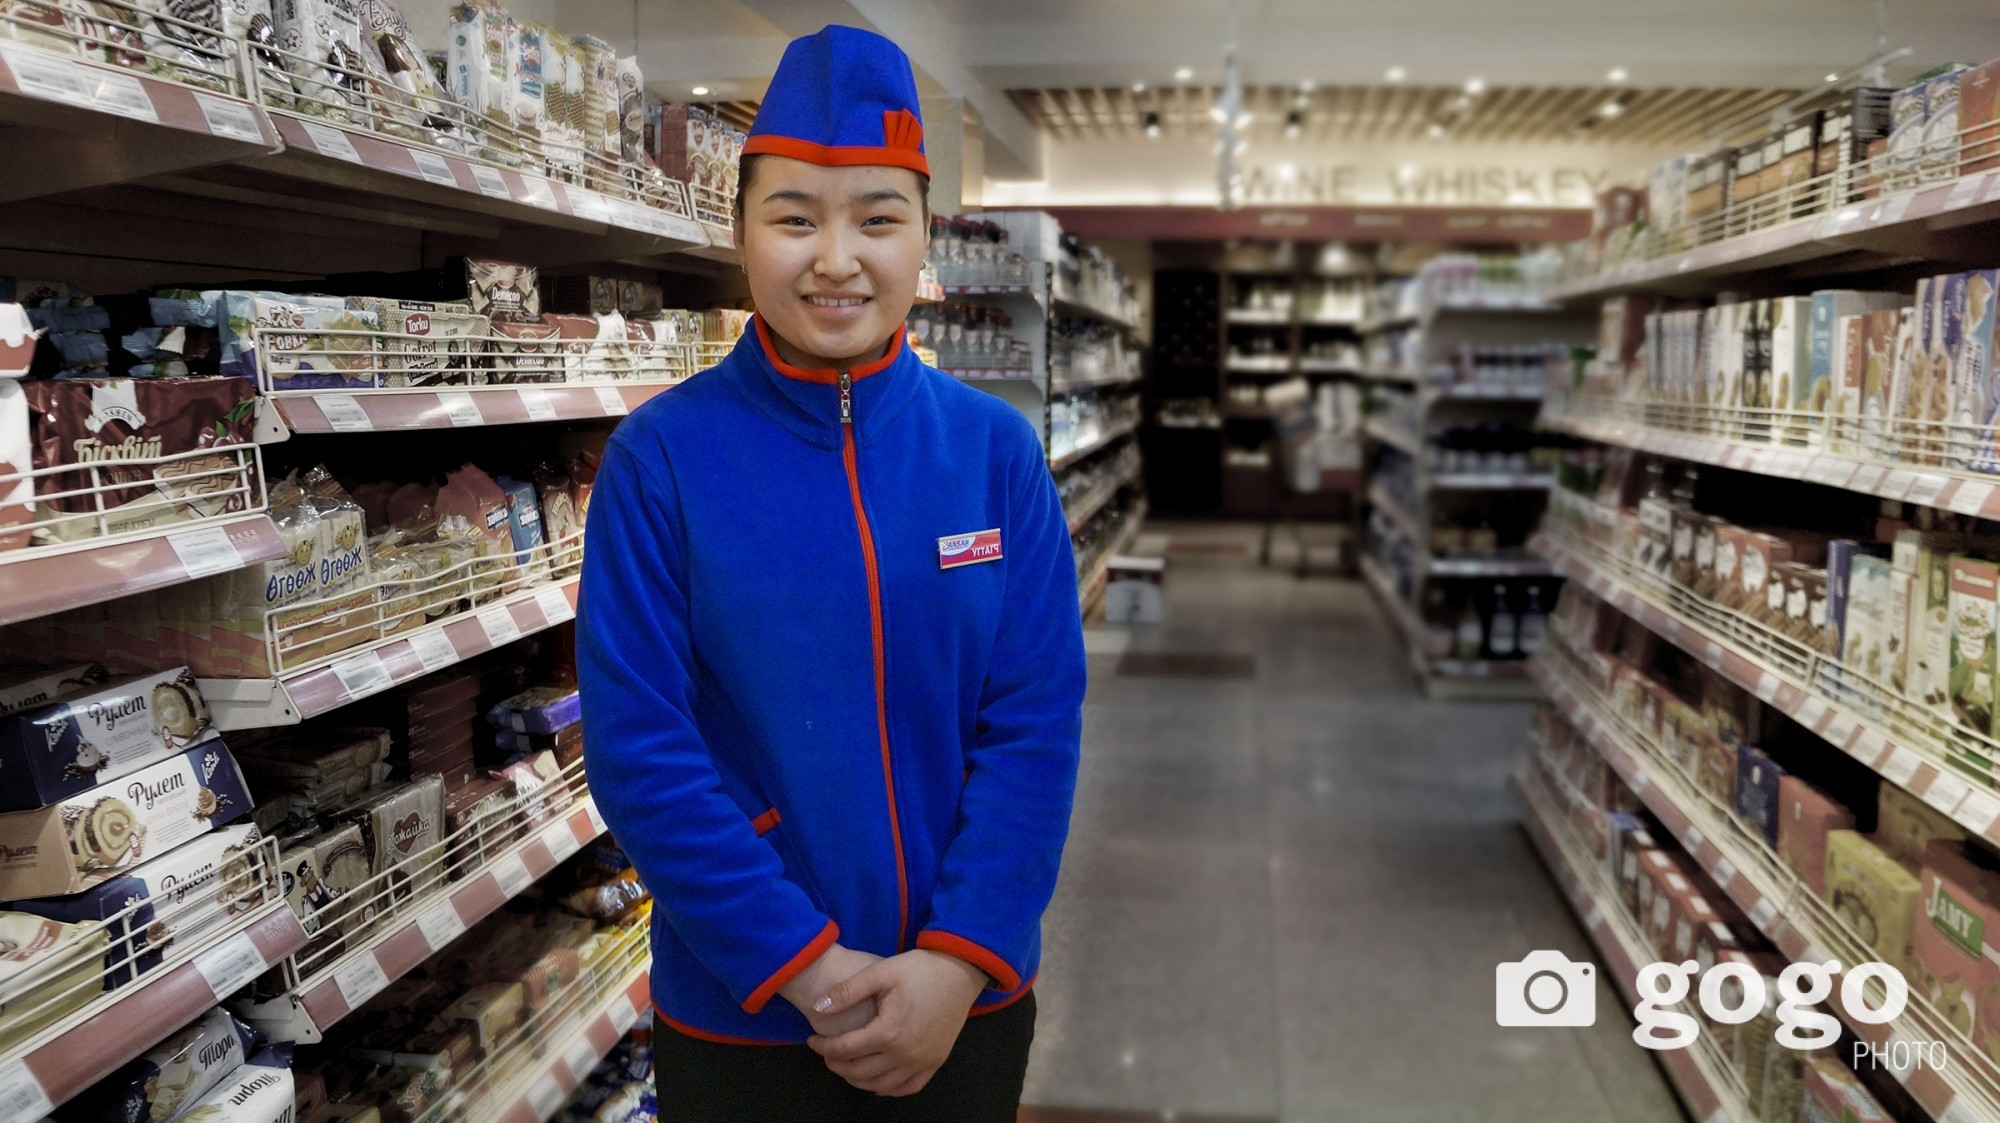 B.Namuun works as reception at Sansar supermarket. She wants success at her career and to have nice family.